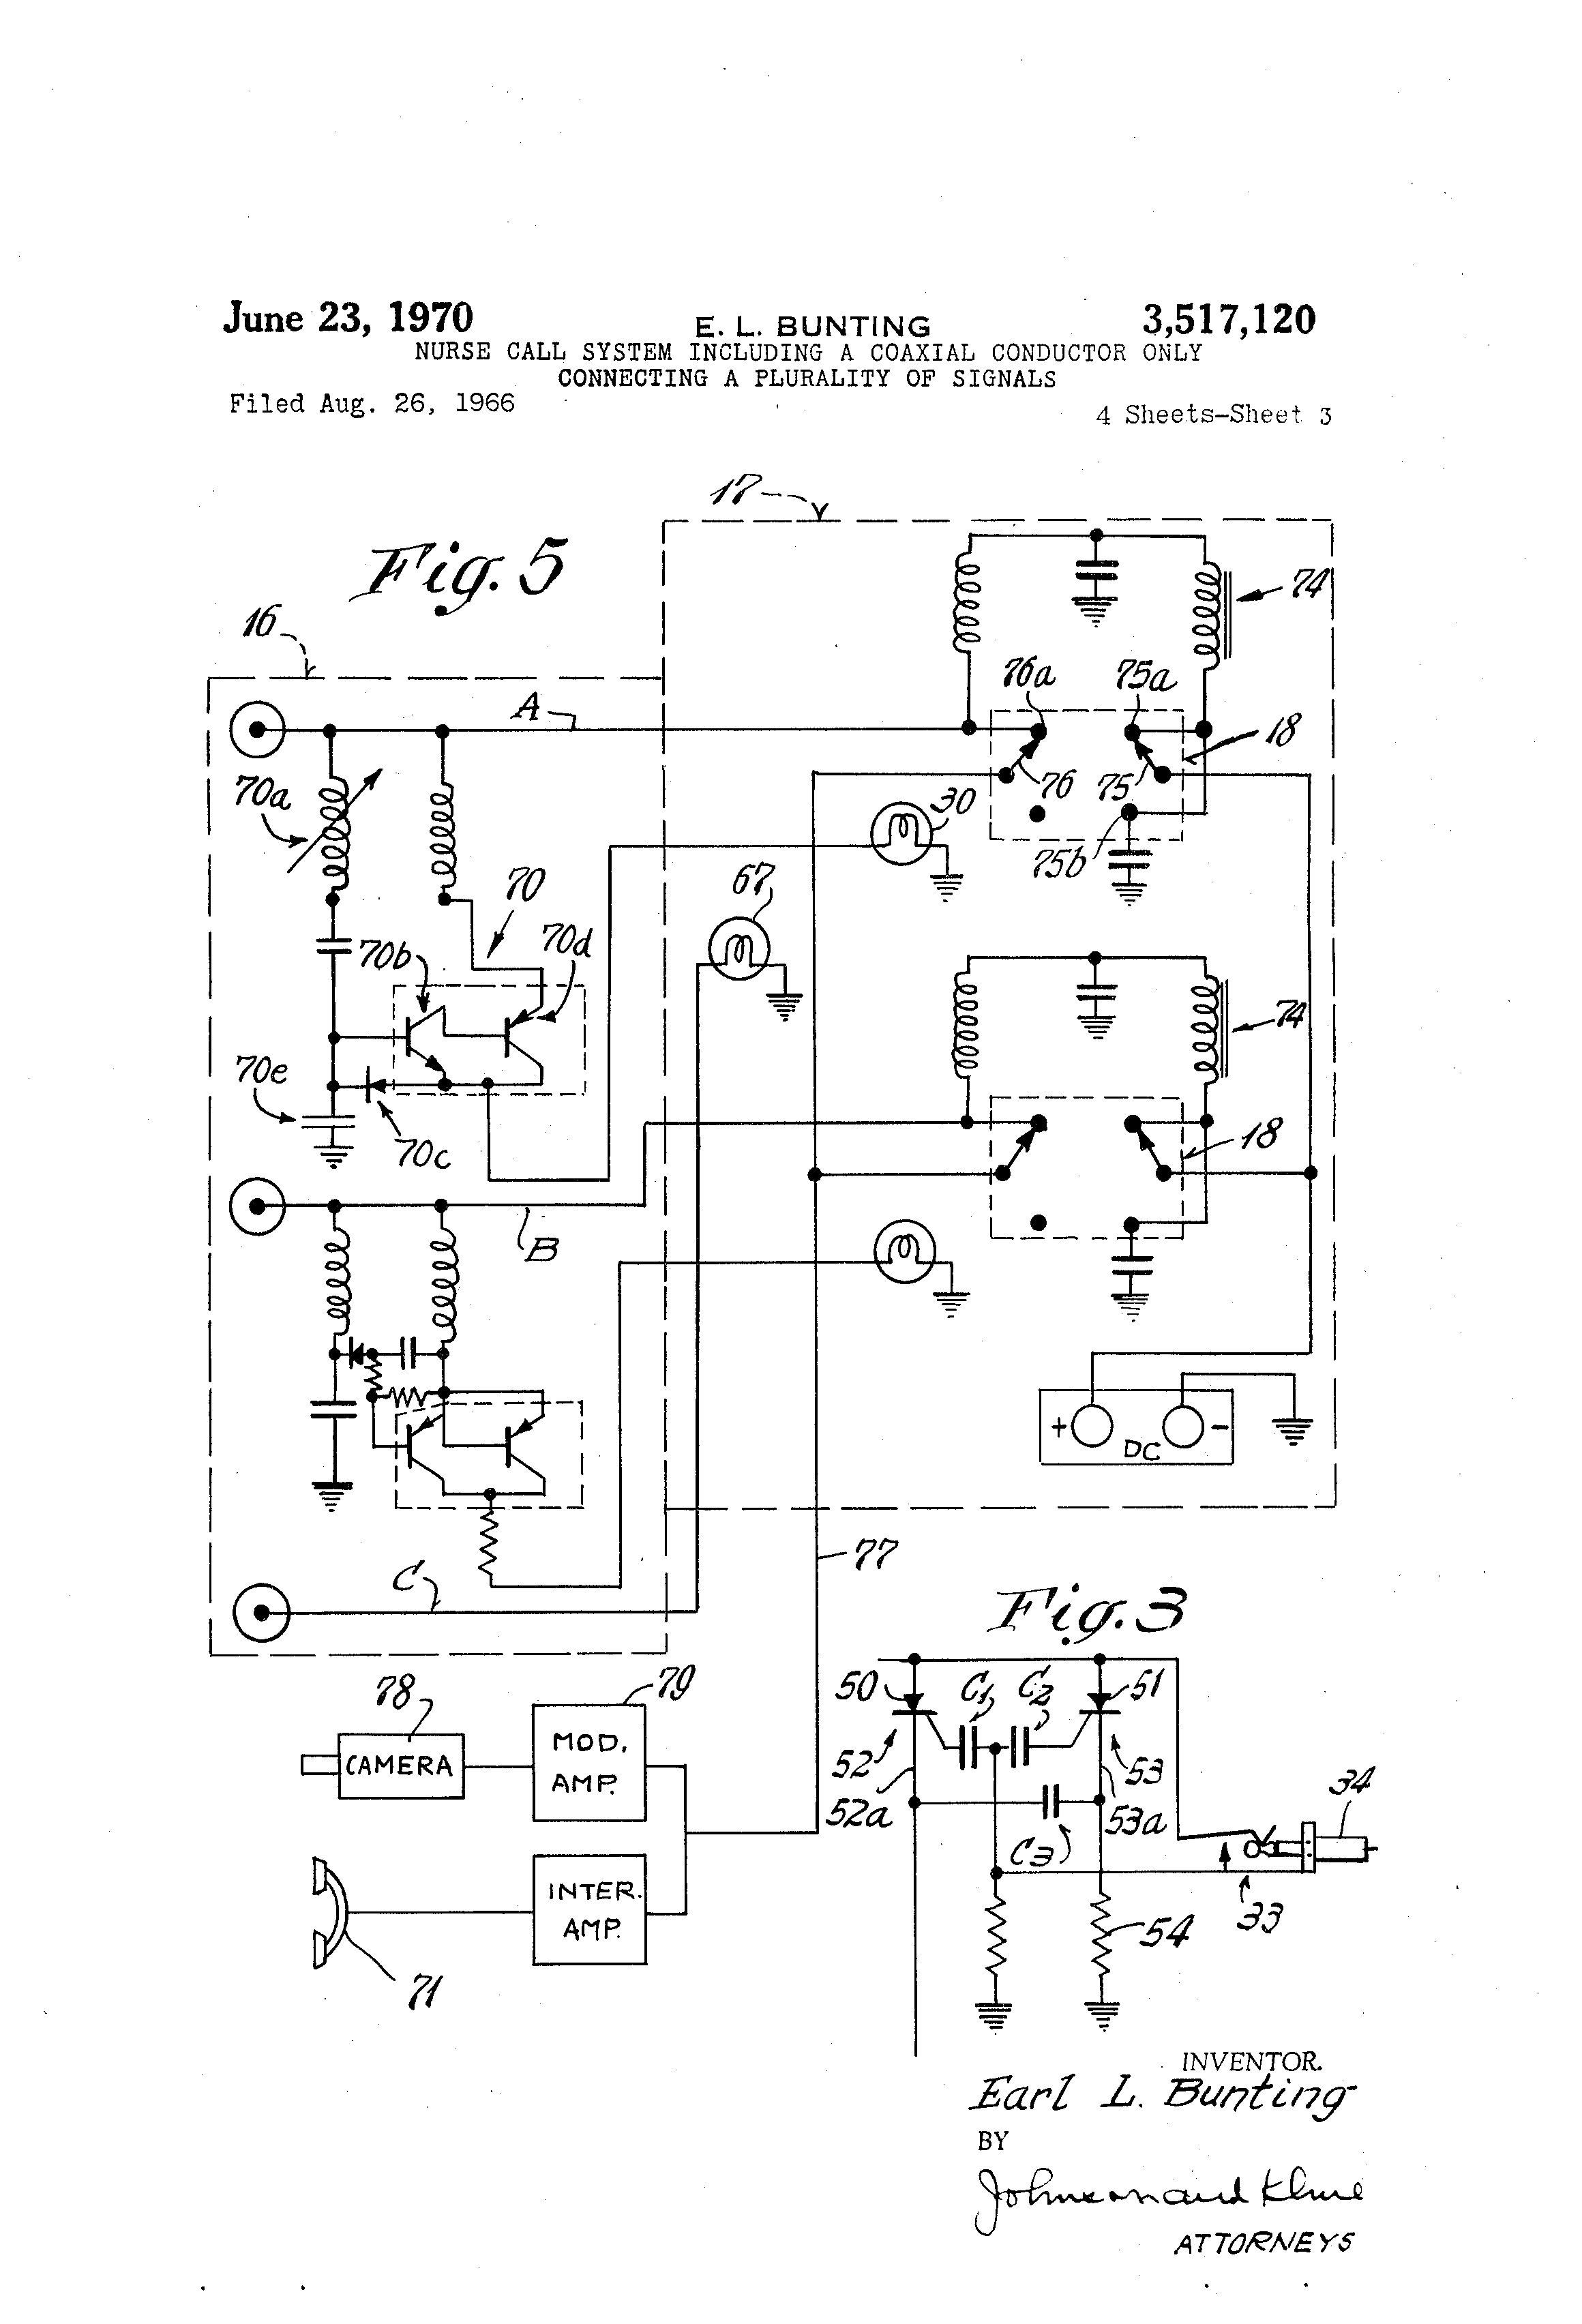 US3517120 2 patent us3517120 nurse call system including a coaxial conductor nurse call station wiring diagram at eliteediting.co